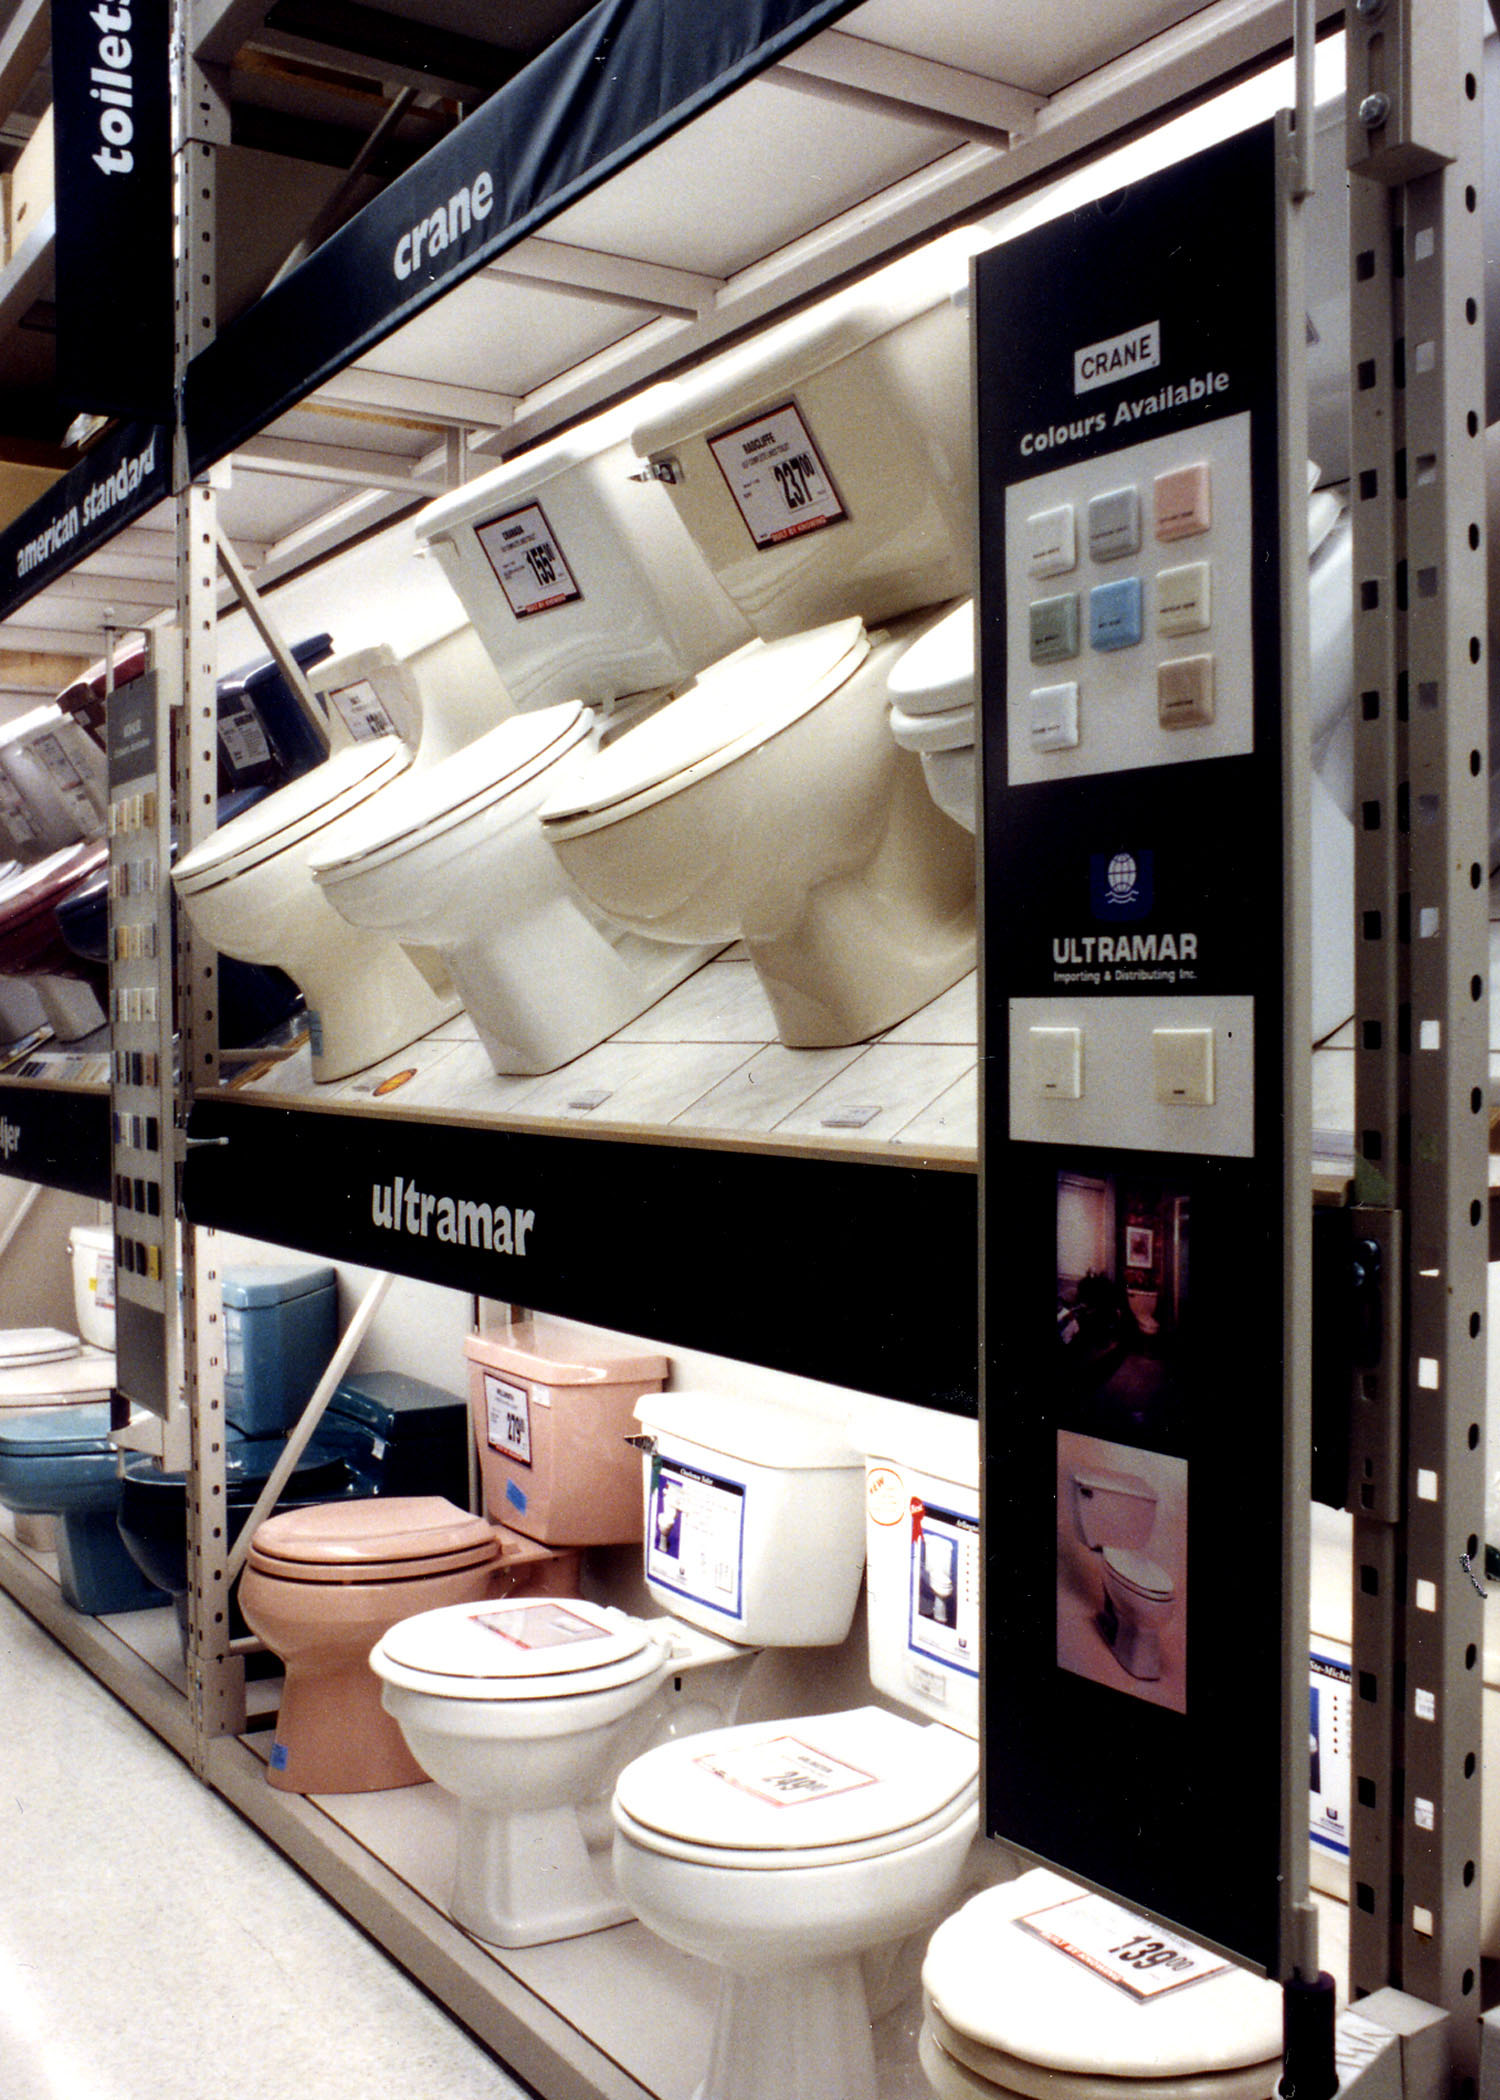 Product display - Toilets